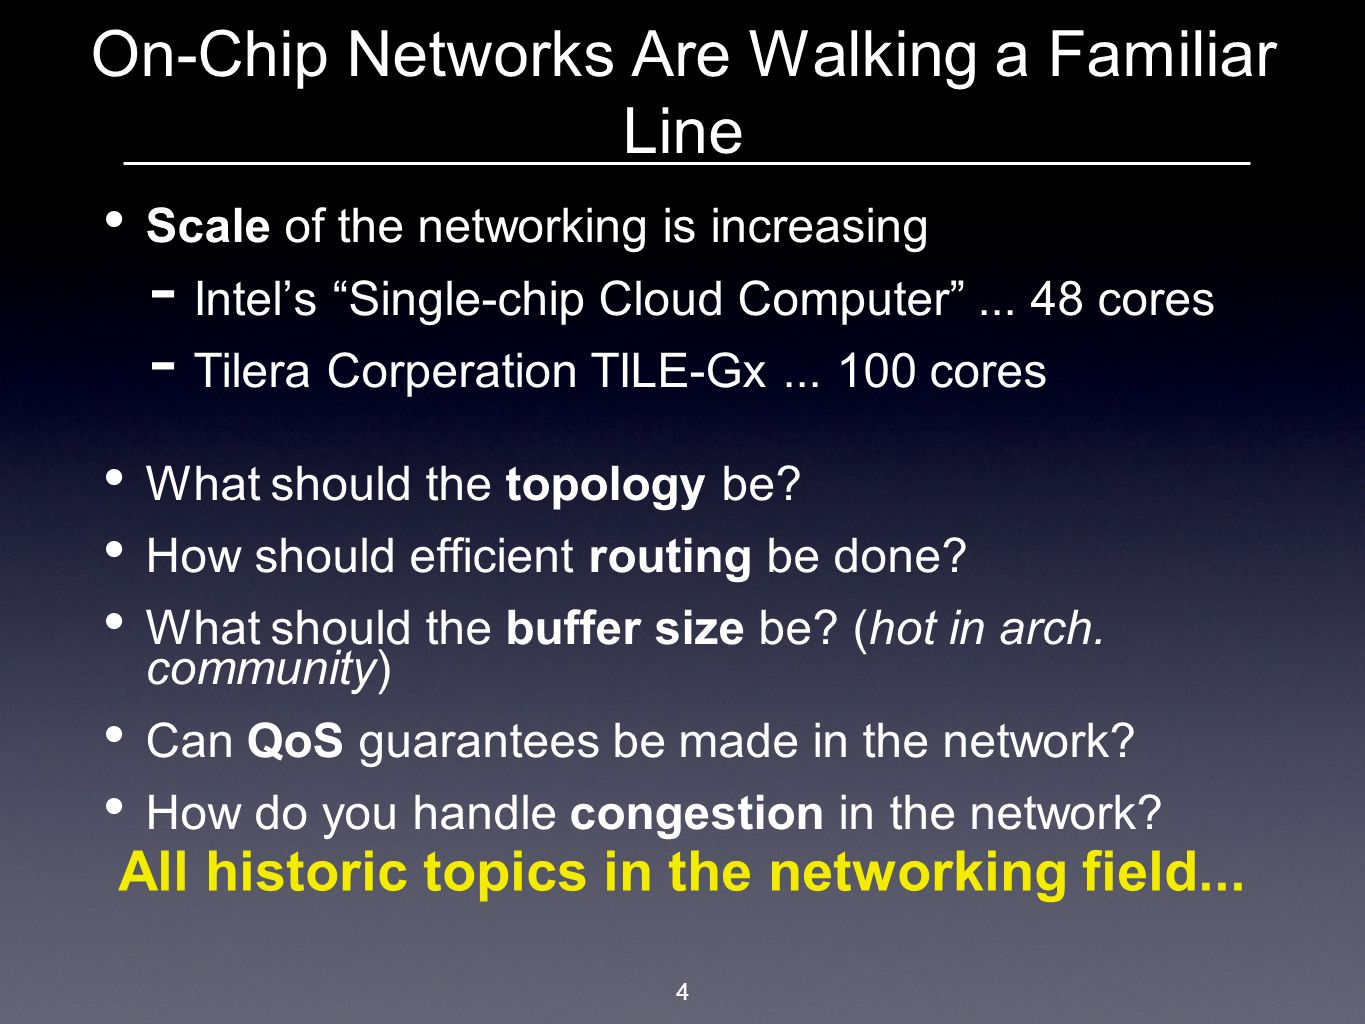 On-Chip Networks Are Walking a Familiar Line